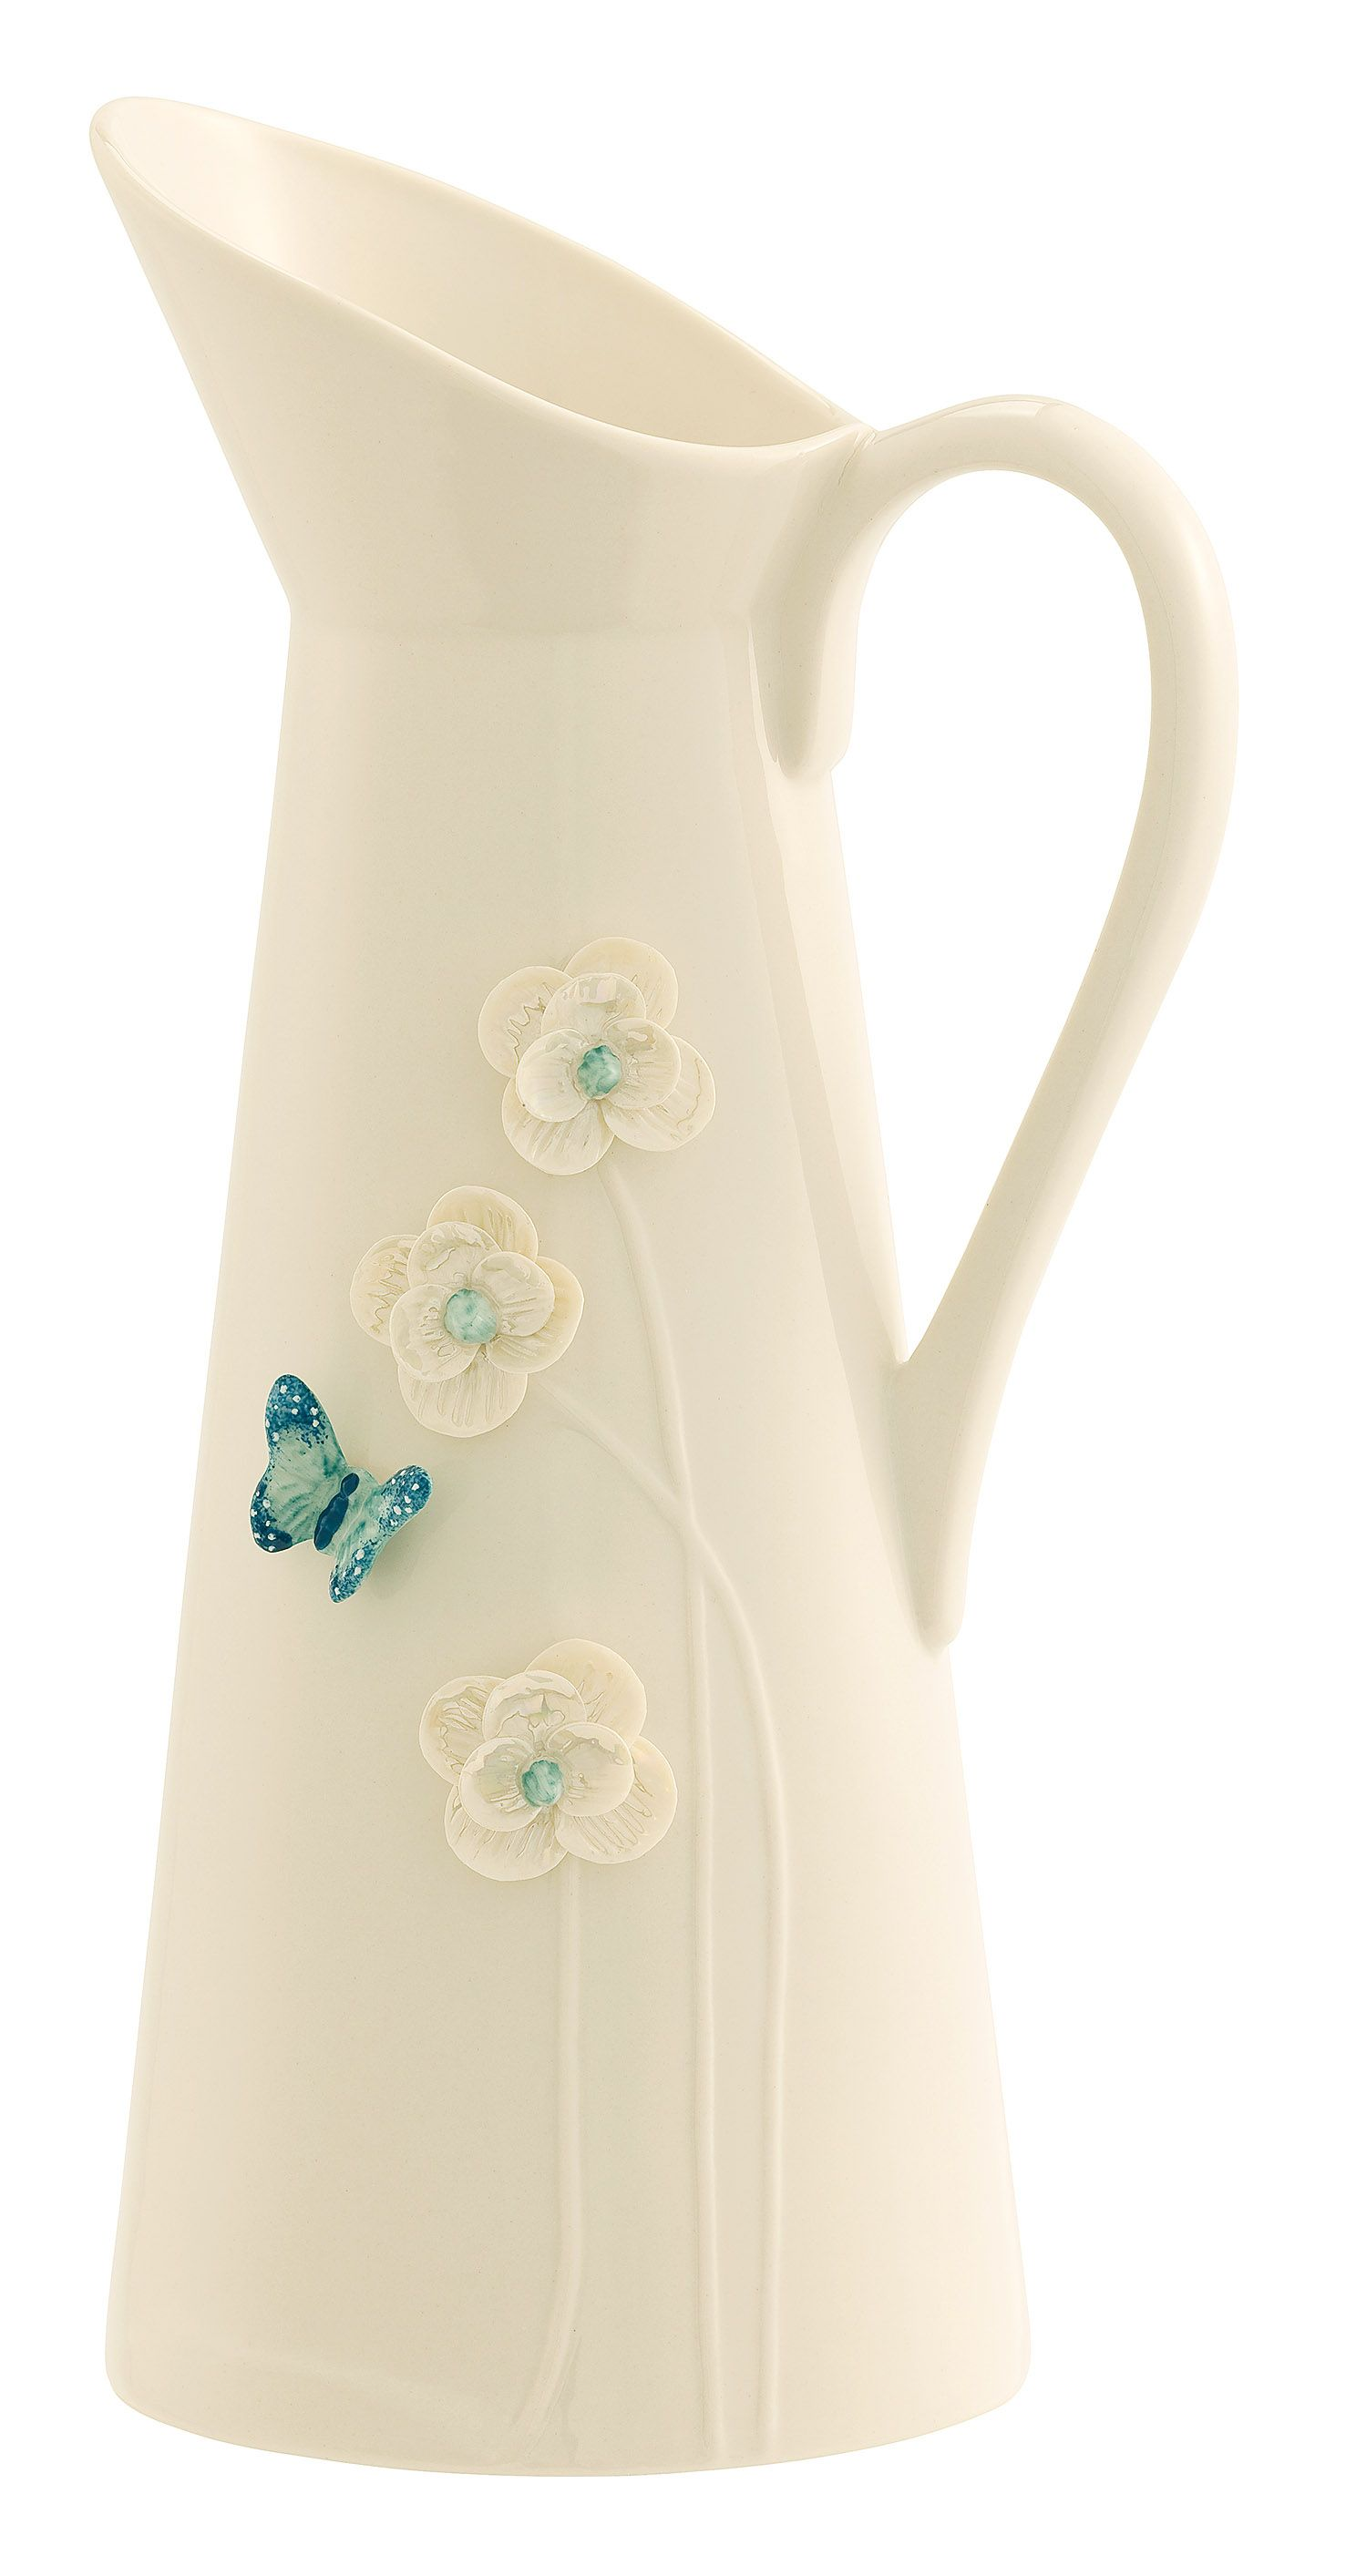 Image of Belleek Living Azure Collection pitcher